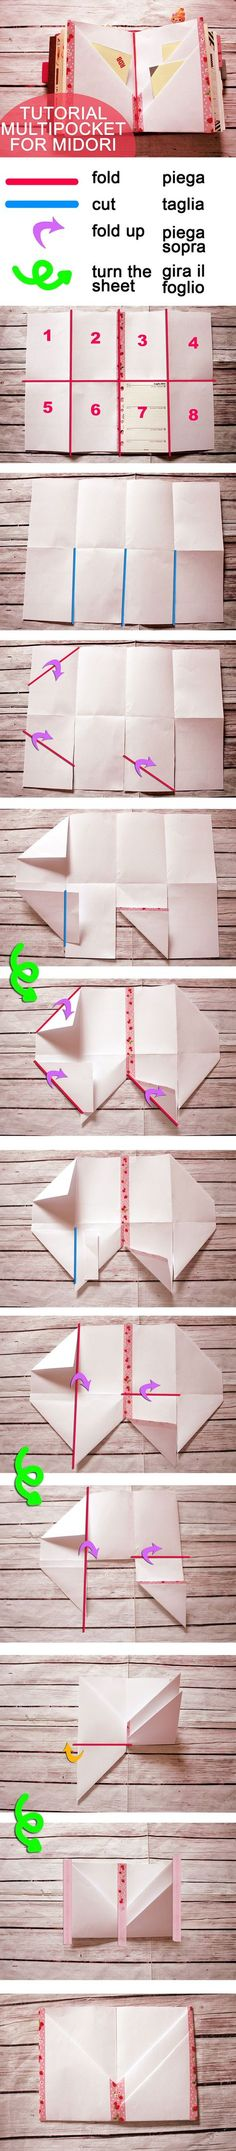 How-to – Green Chair Press Blog